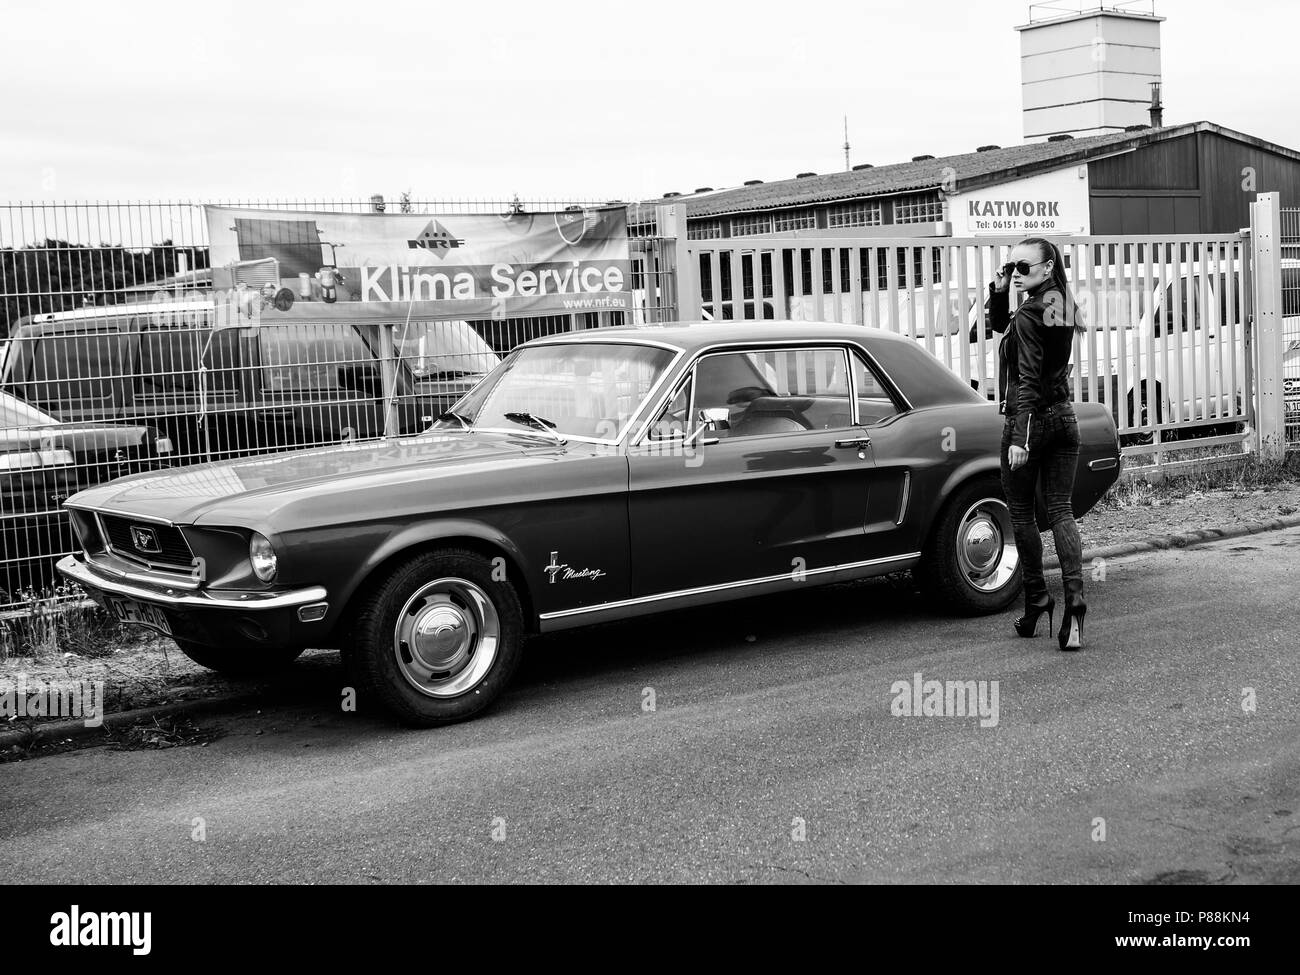 Female model and old car ford mustang